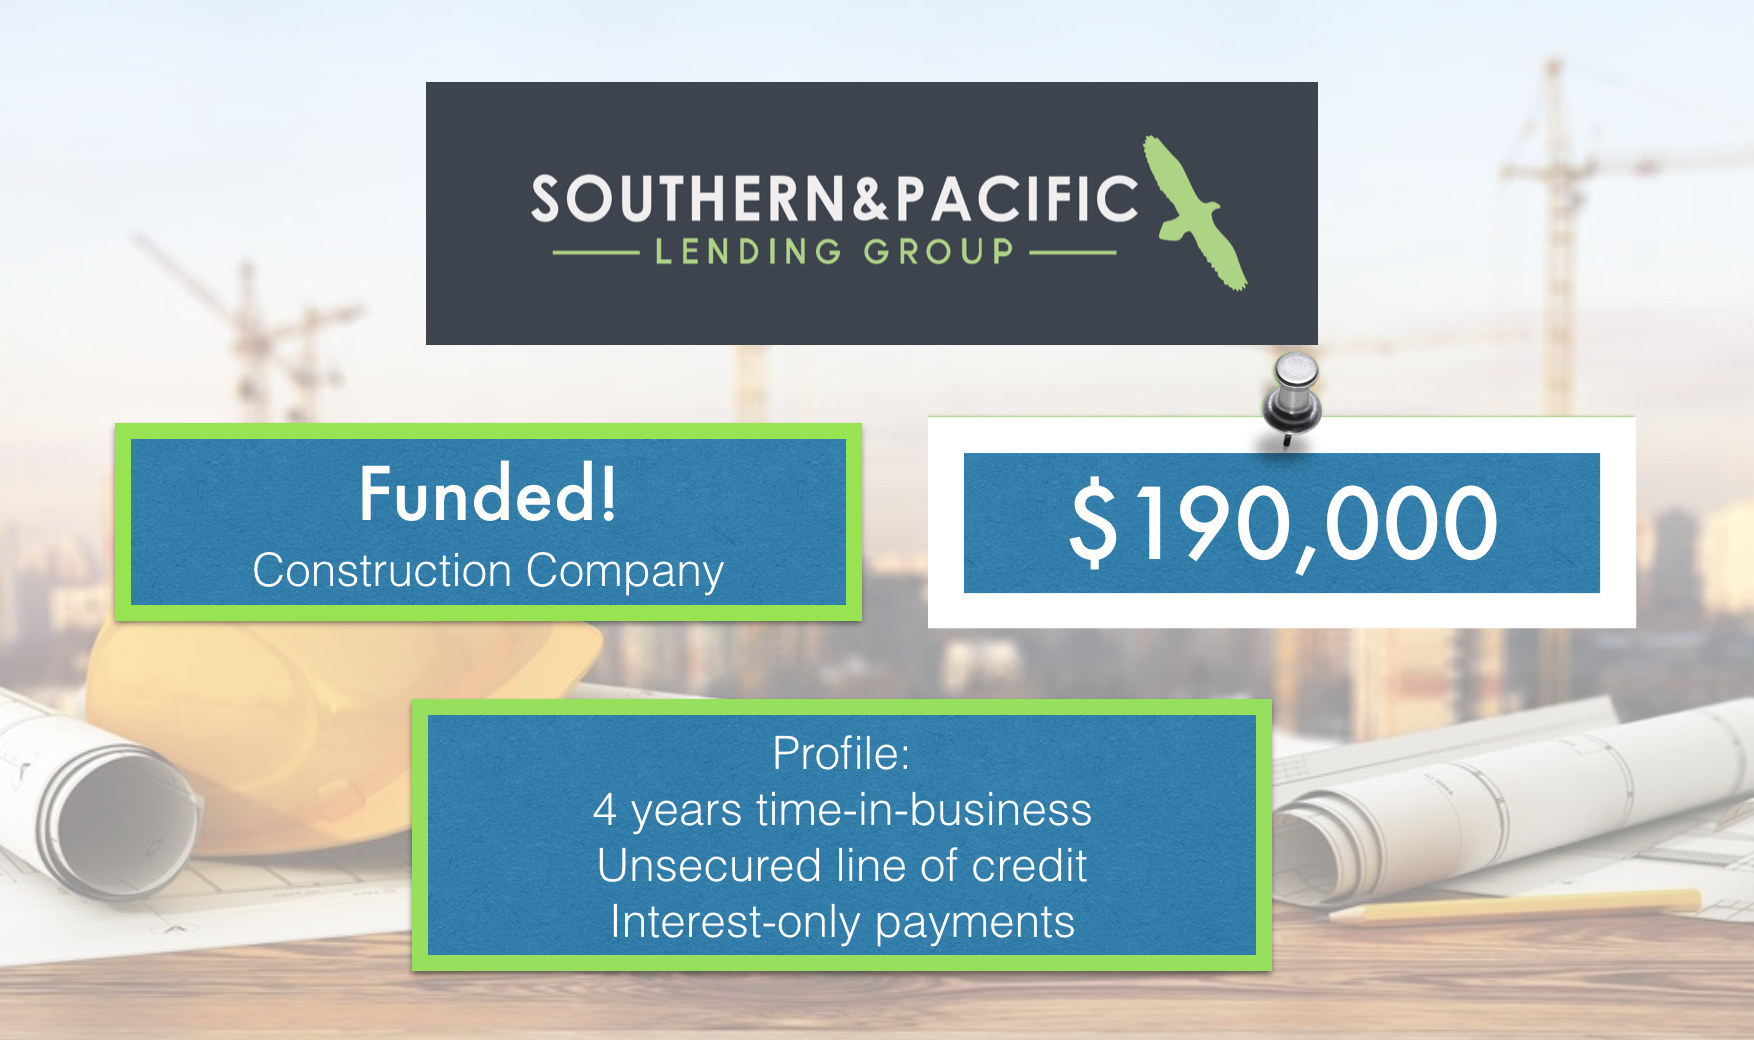 Construction Company – Southern & Pacific Lending Group